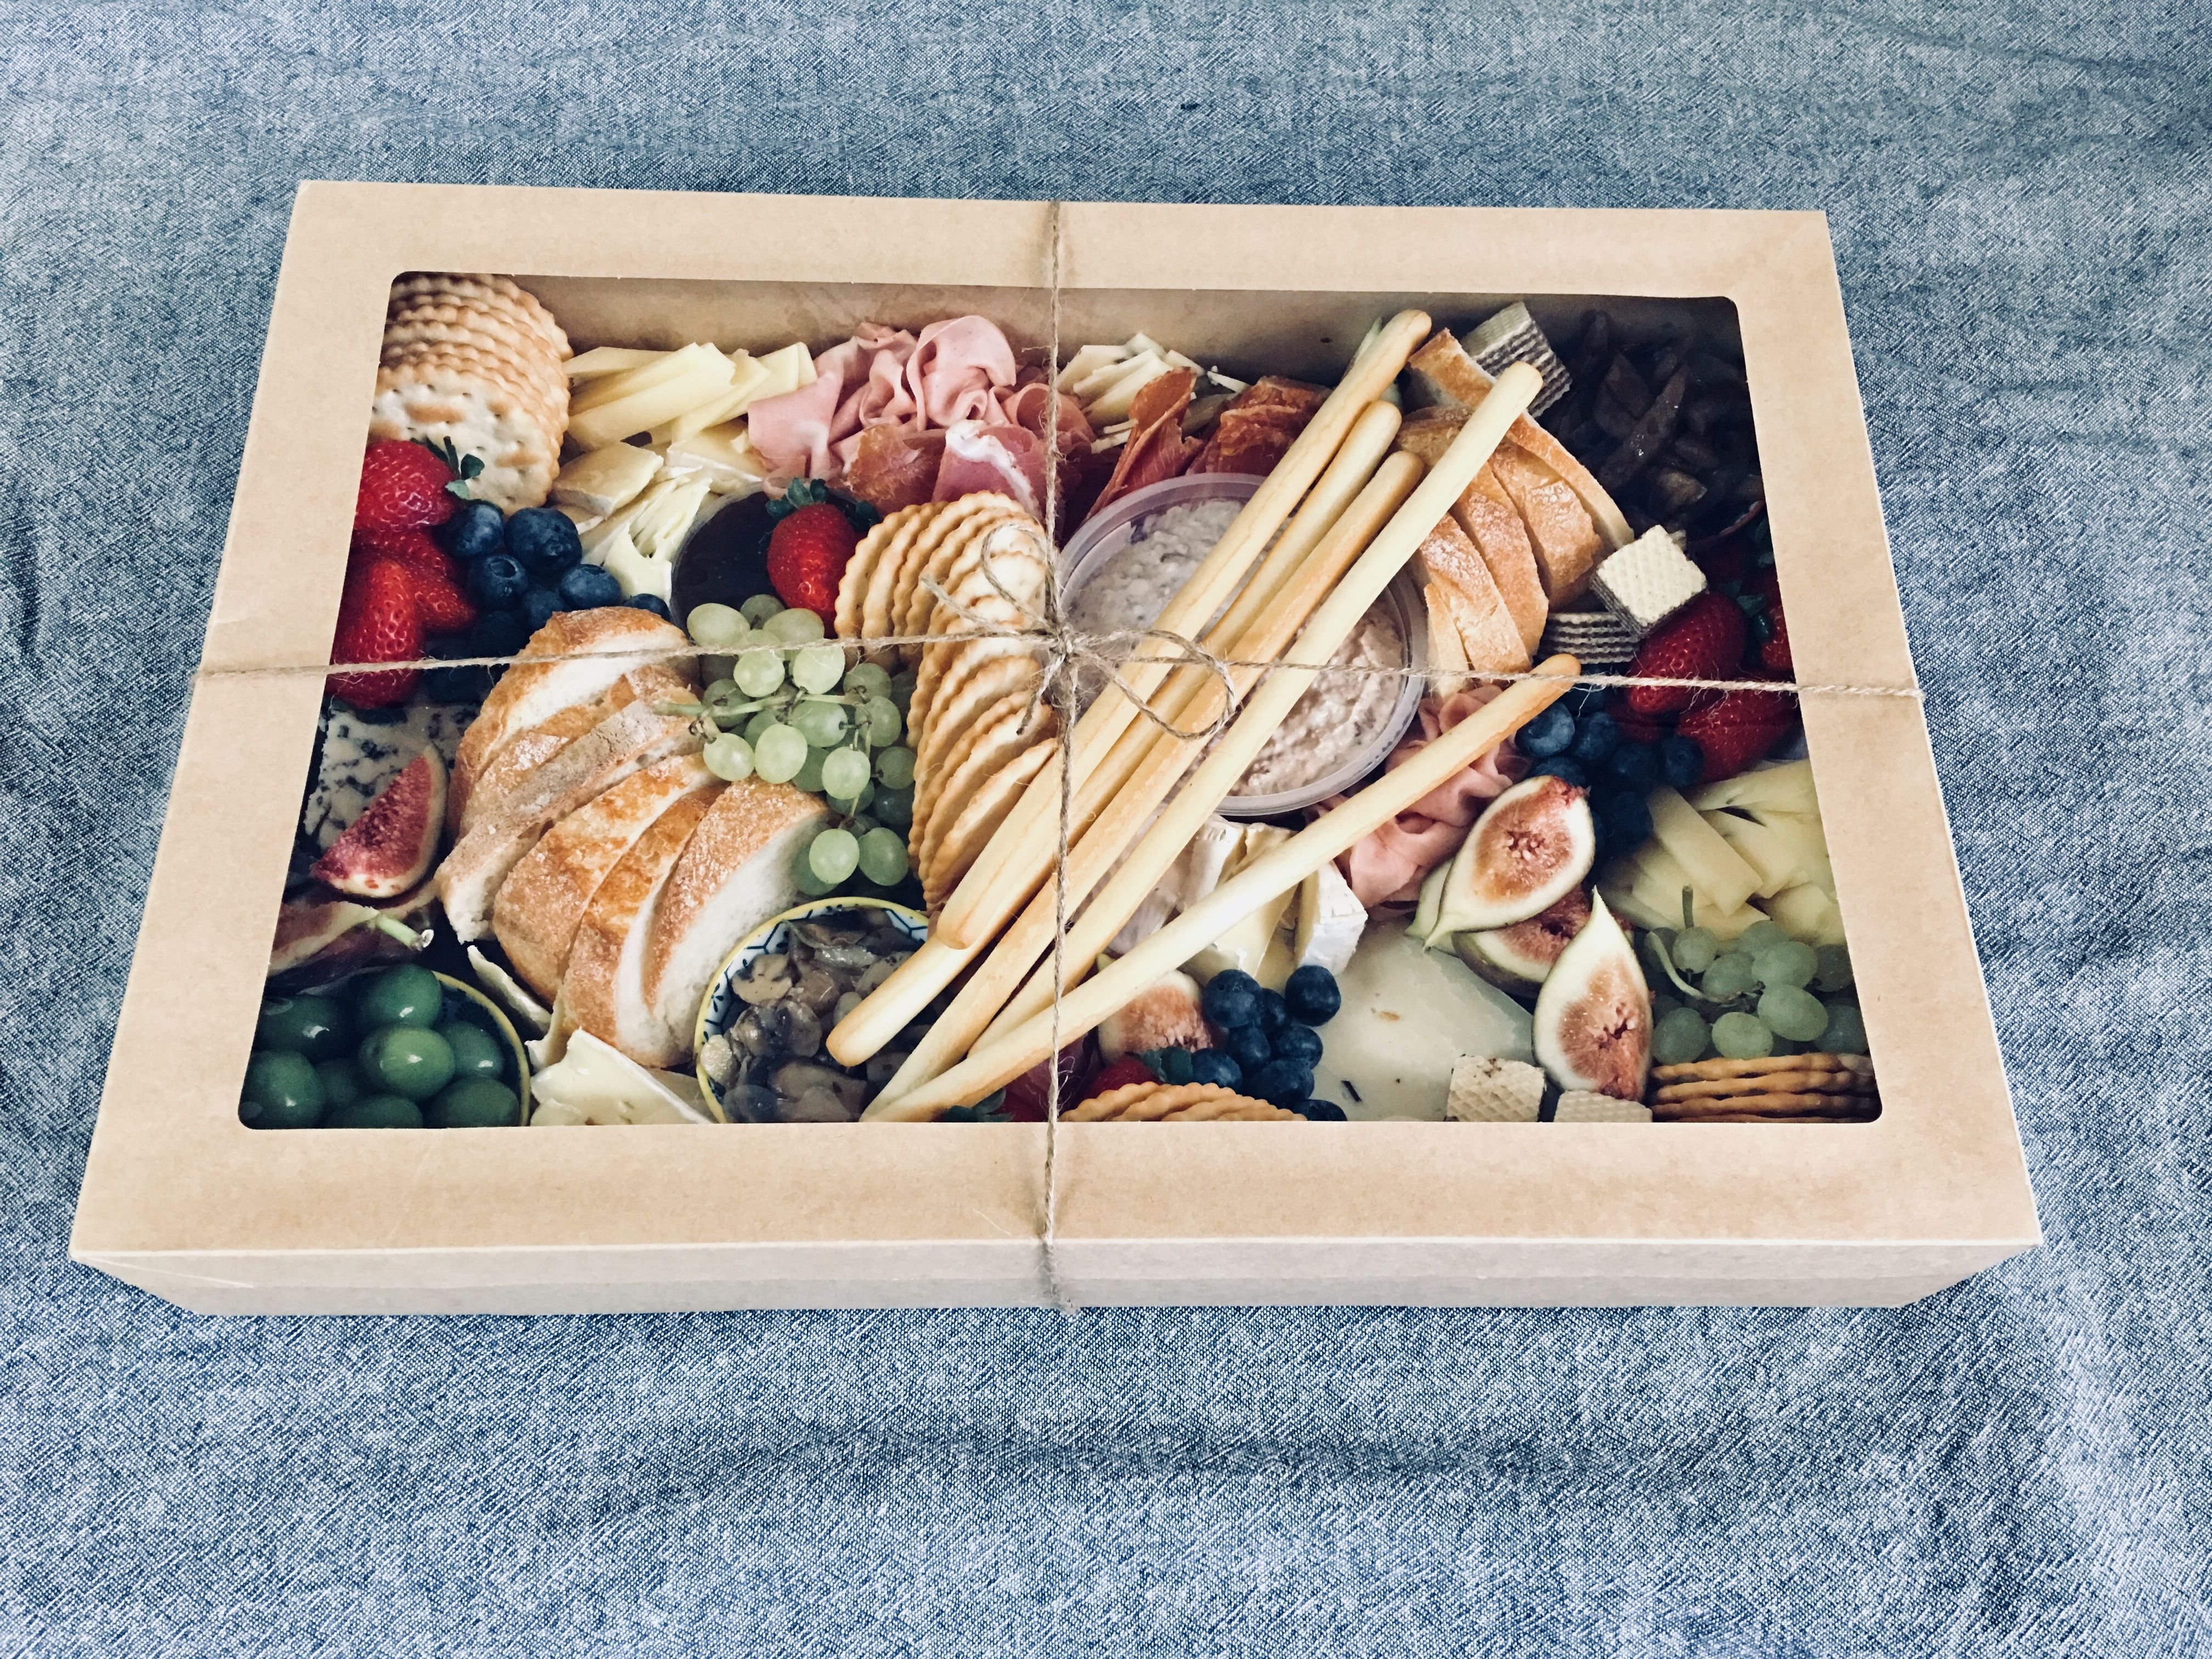 Pin By Vanessa Rochelle On Made By La Paparedda Charcuterie Gifts Picnic Food Picnic Box